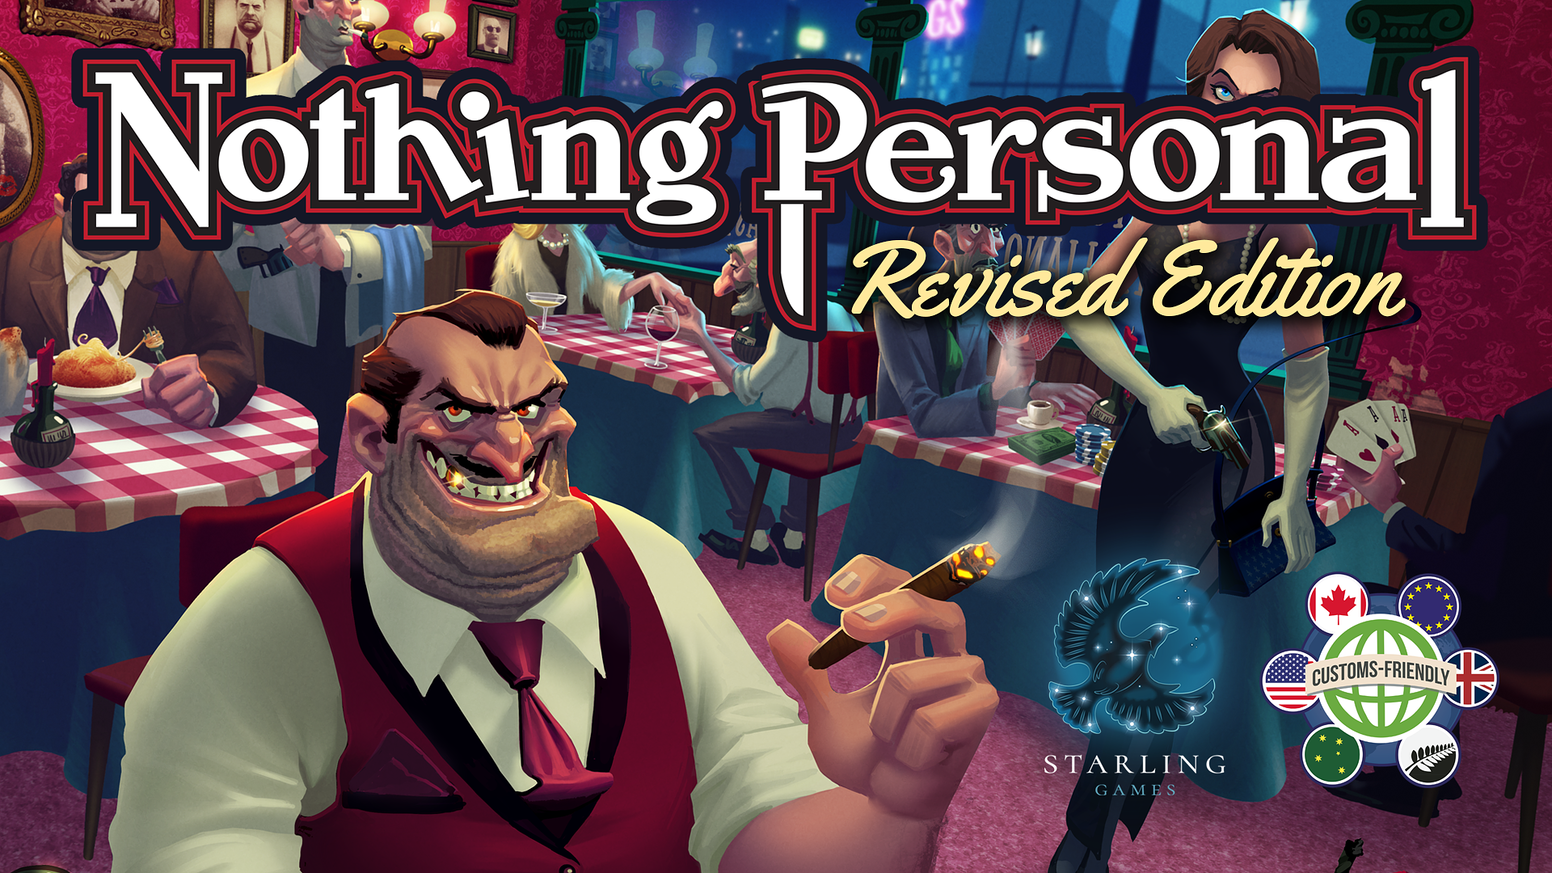 Nothing personal revised edition by game salute pledging for the introducing a new revised edition of nothing personal new features include location cards new colourmoves